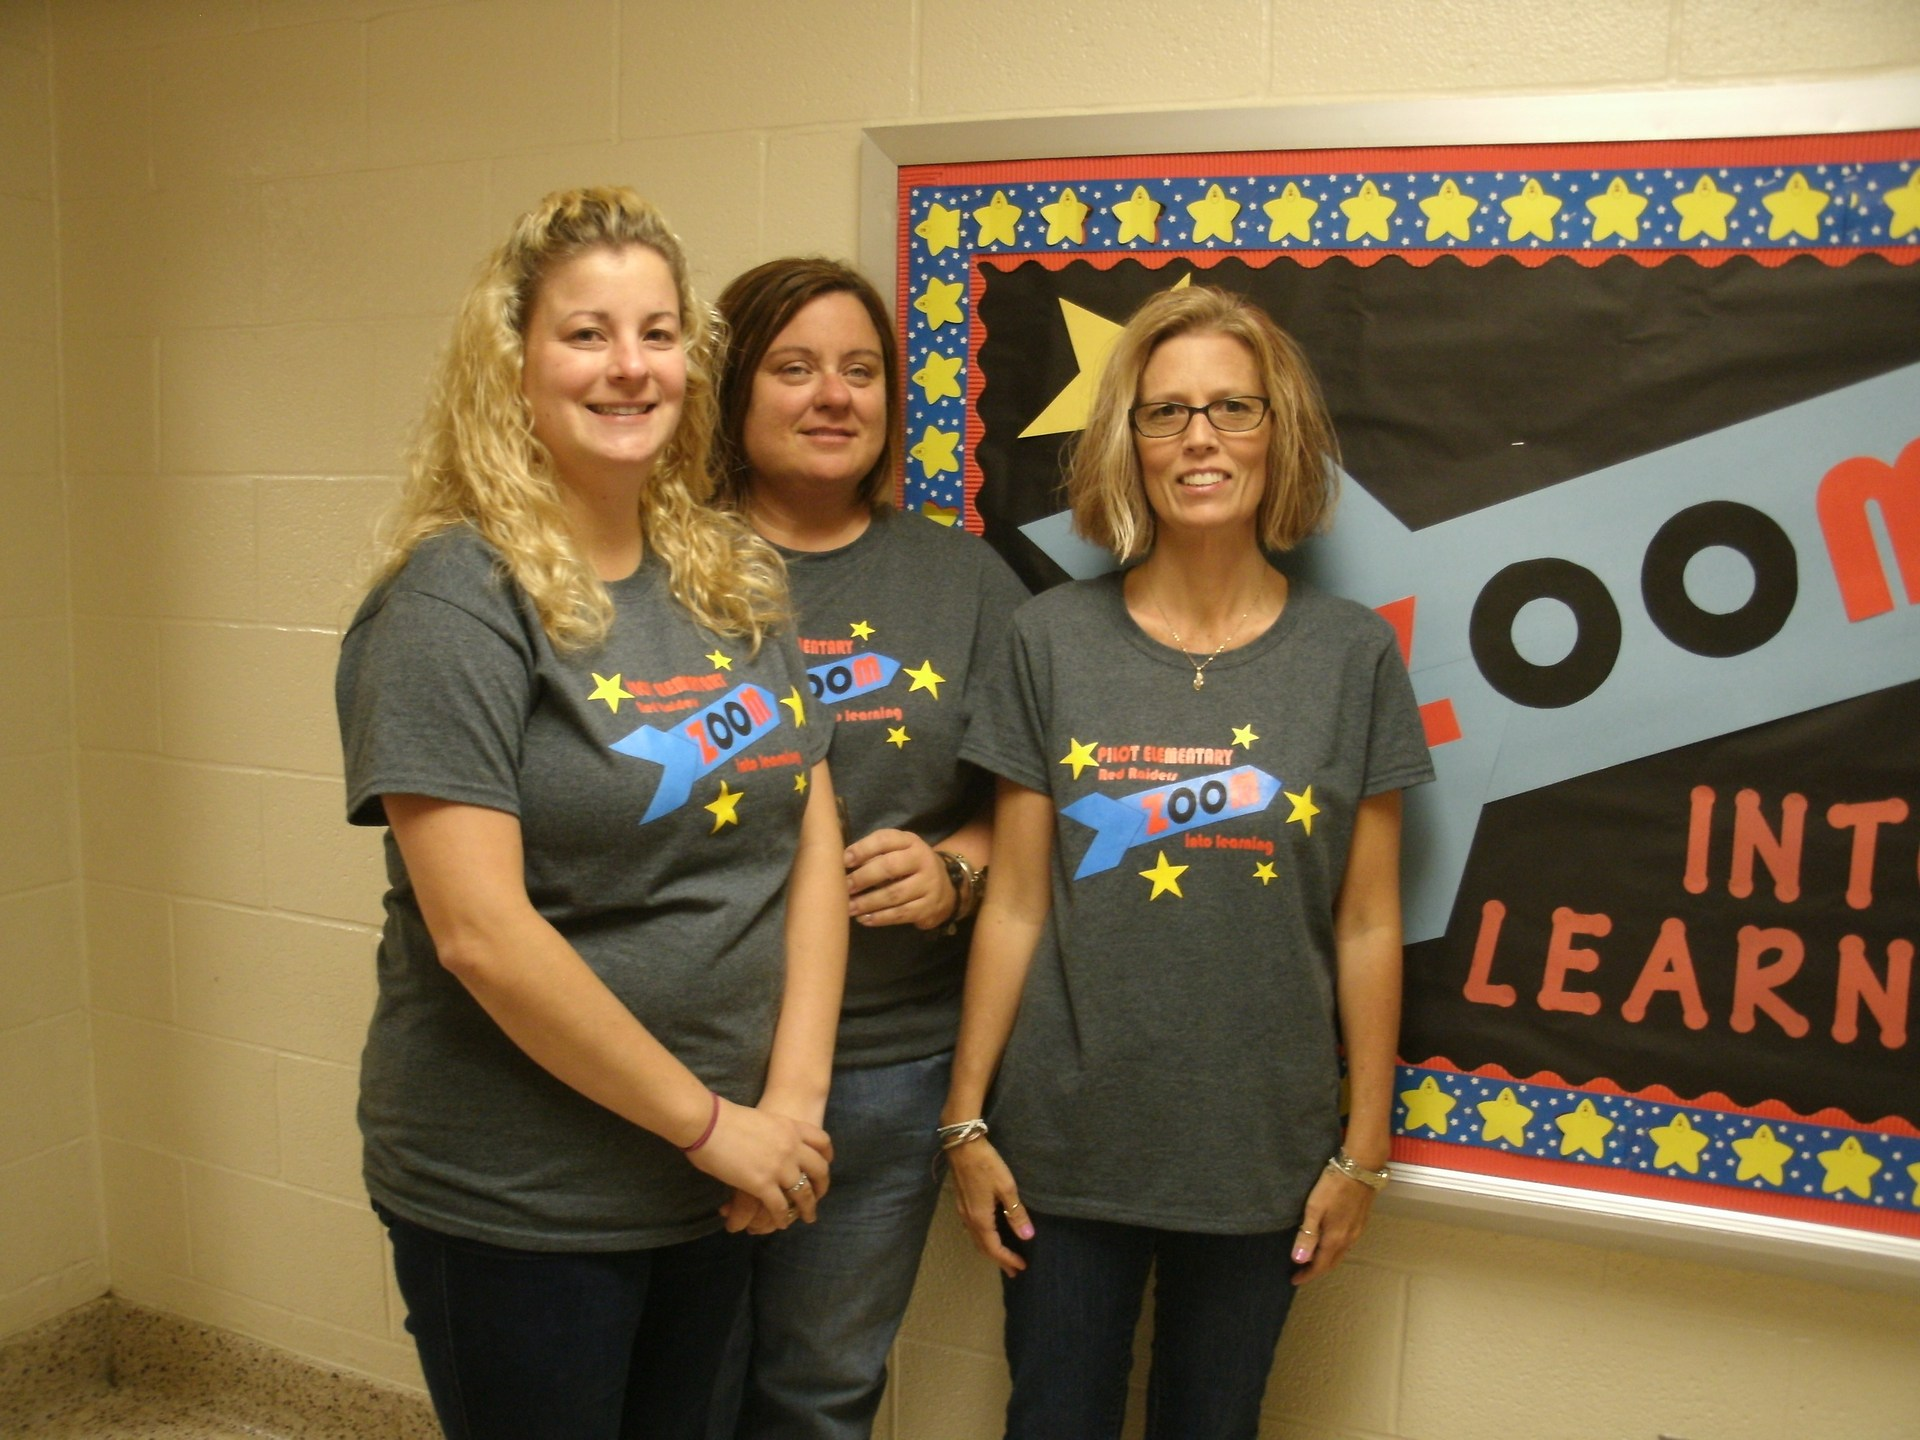 The preschool teacher and two preschool instructional assistants are standing in front of a bulletin board.